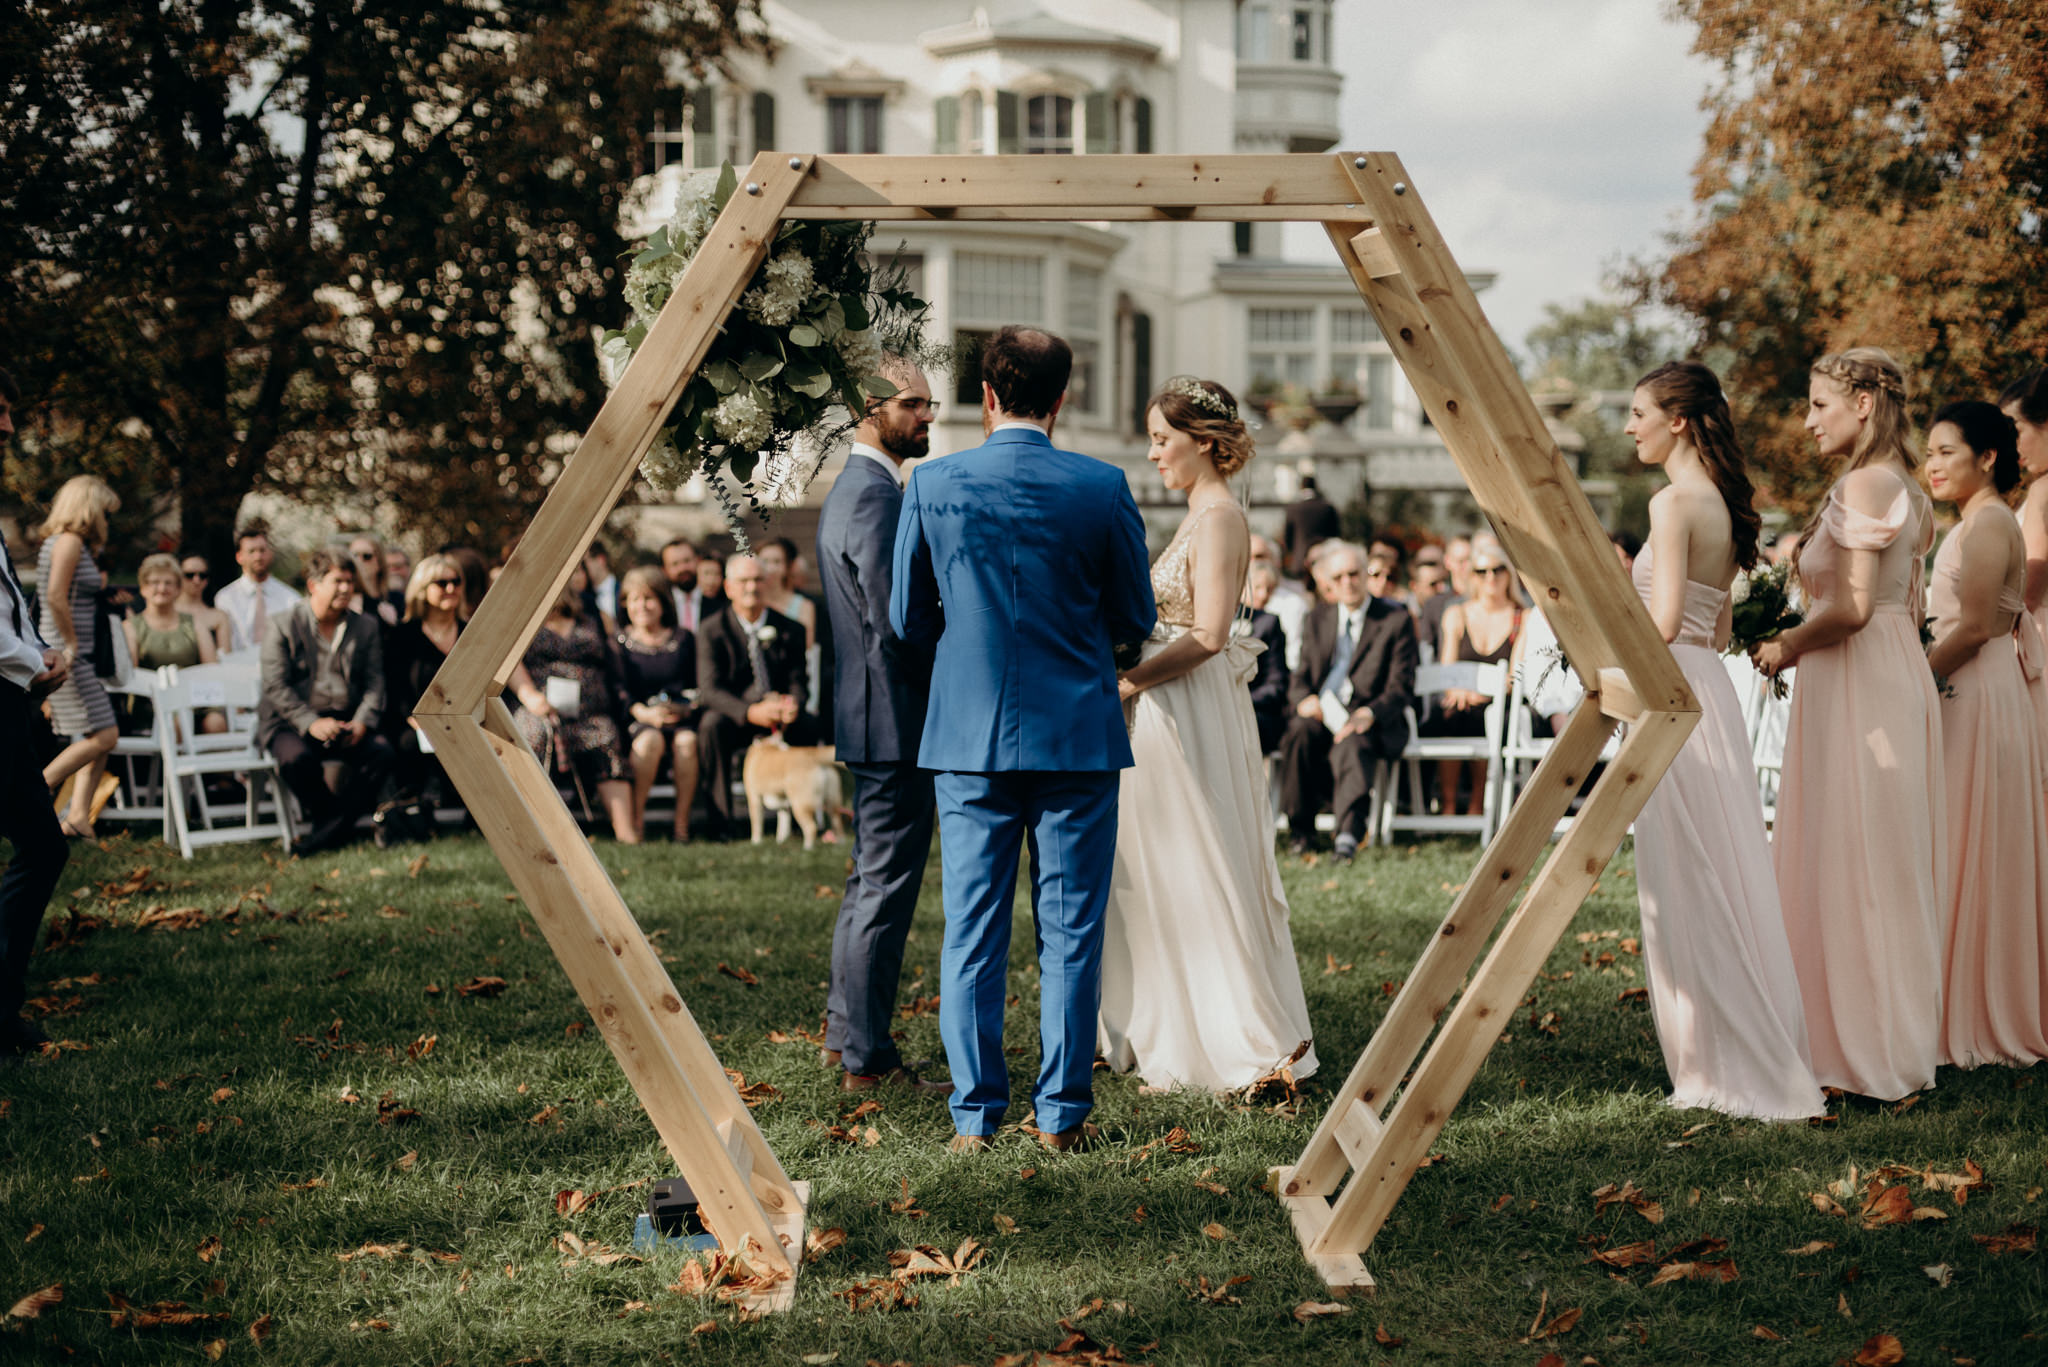 Wooden hexagon ceremony backdrop for outdoor wedding ceremony